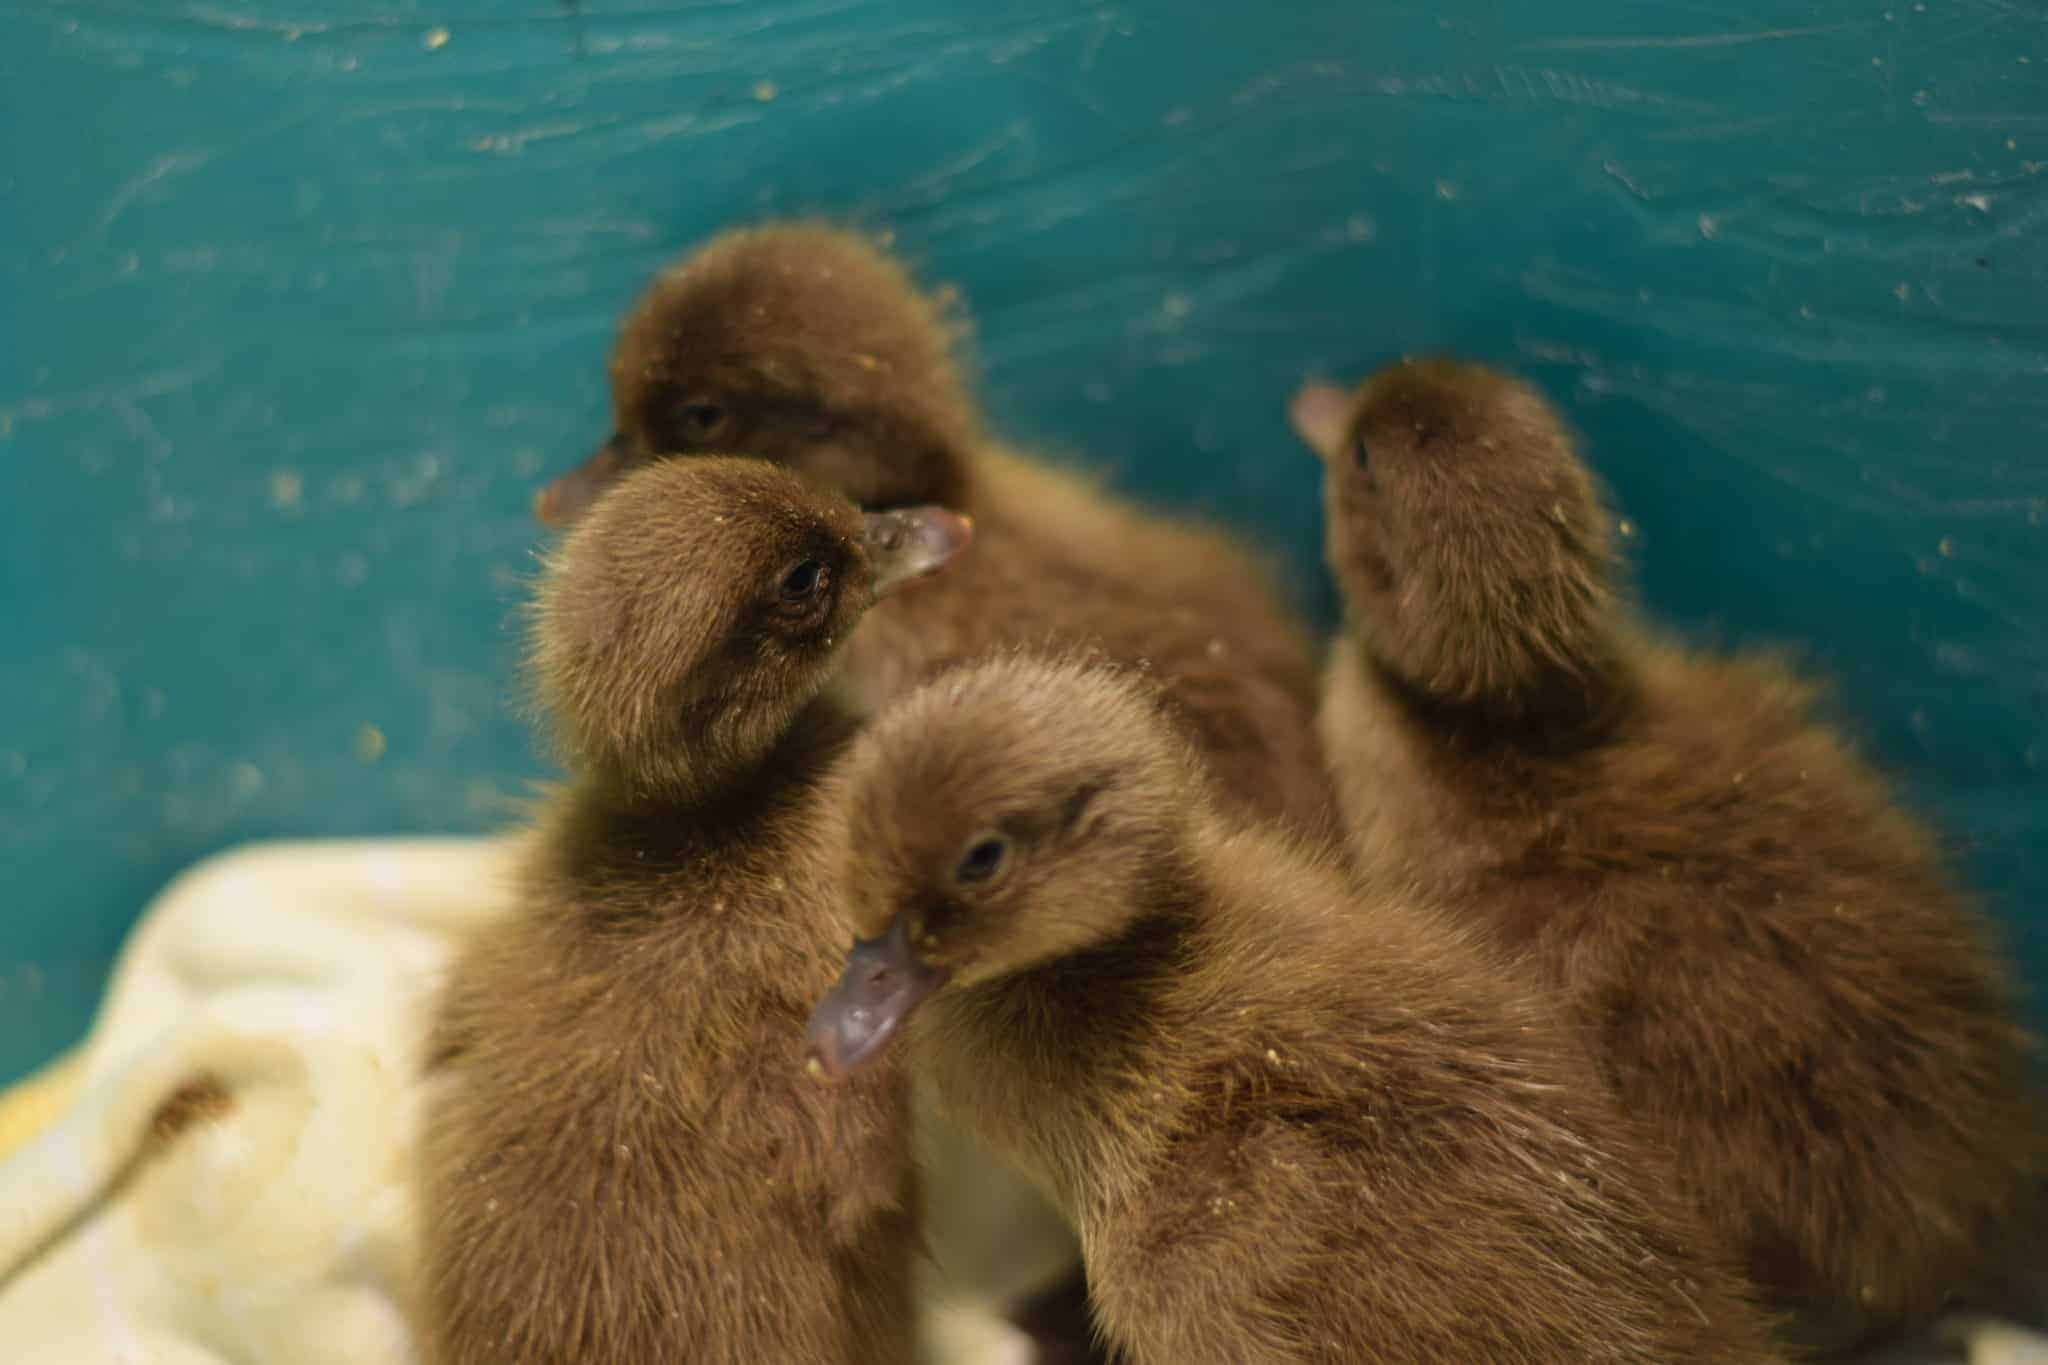 newly born baby ducks in a green tote